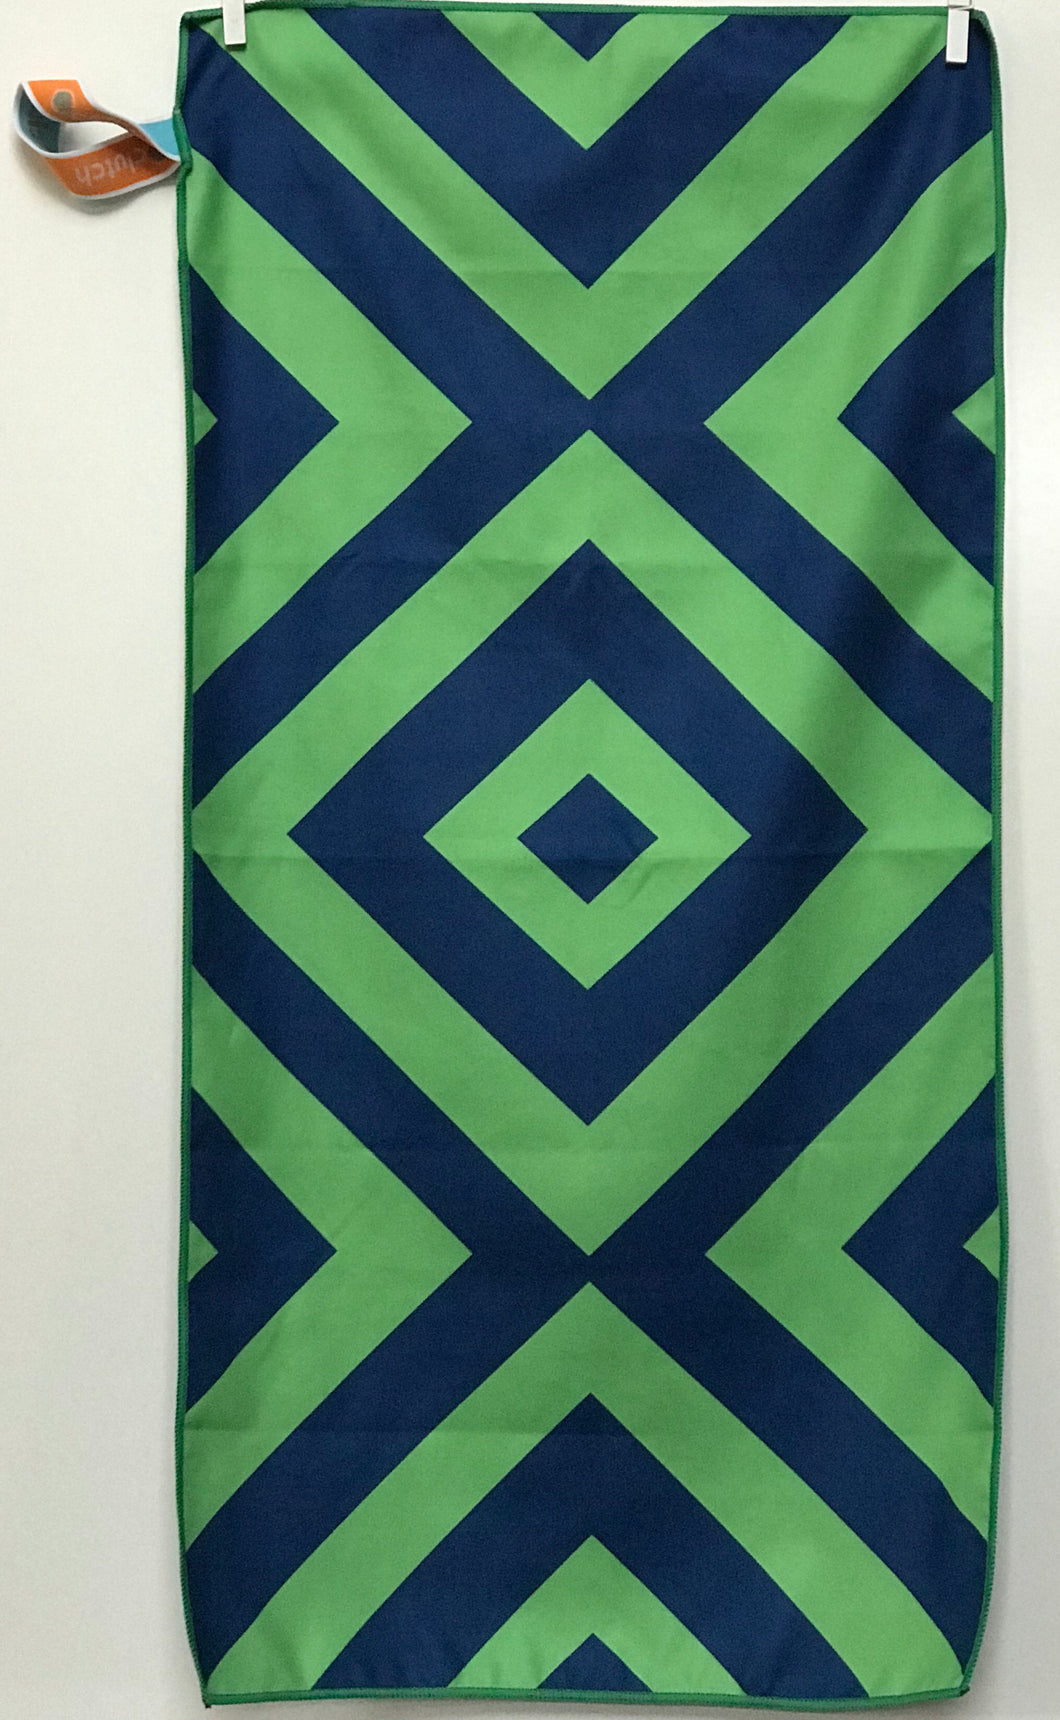 Sport Towel, Navy/Green Diamond